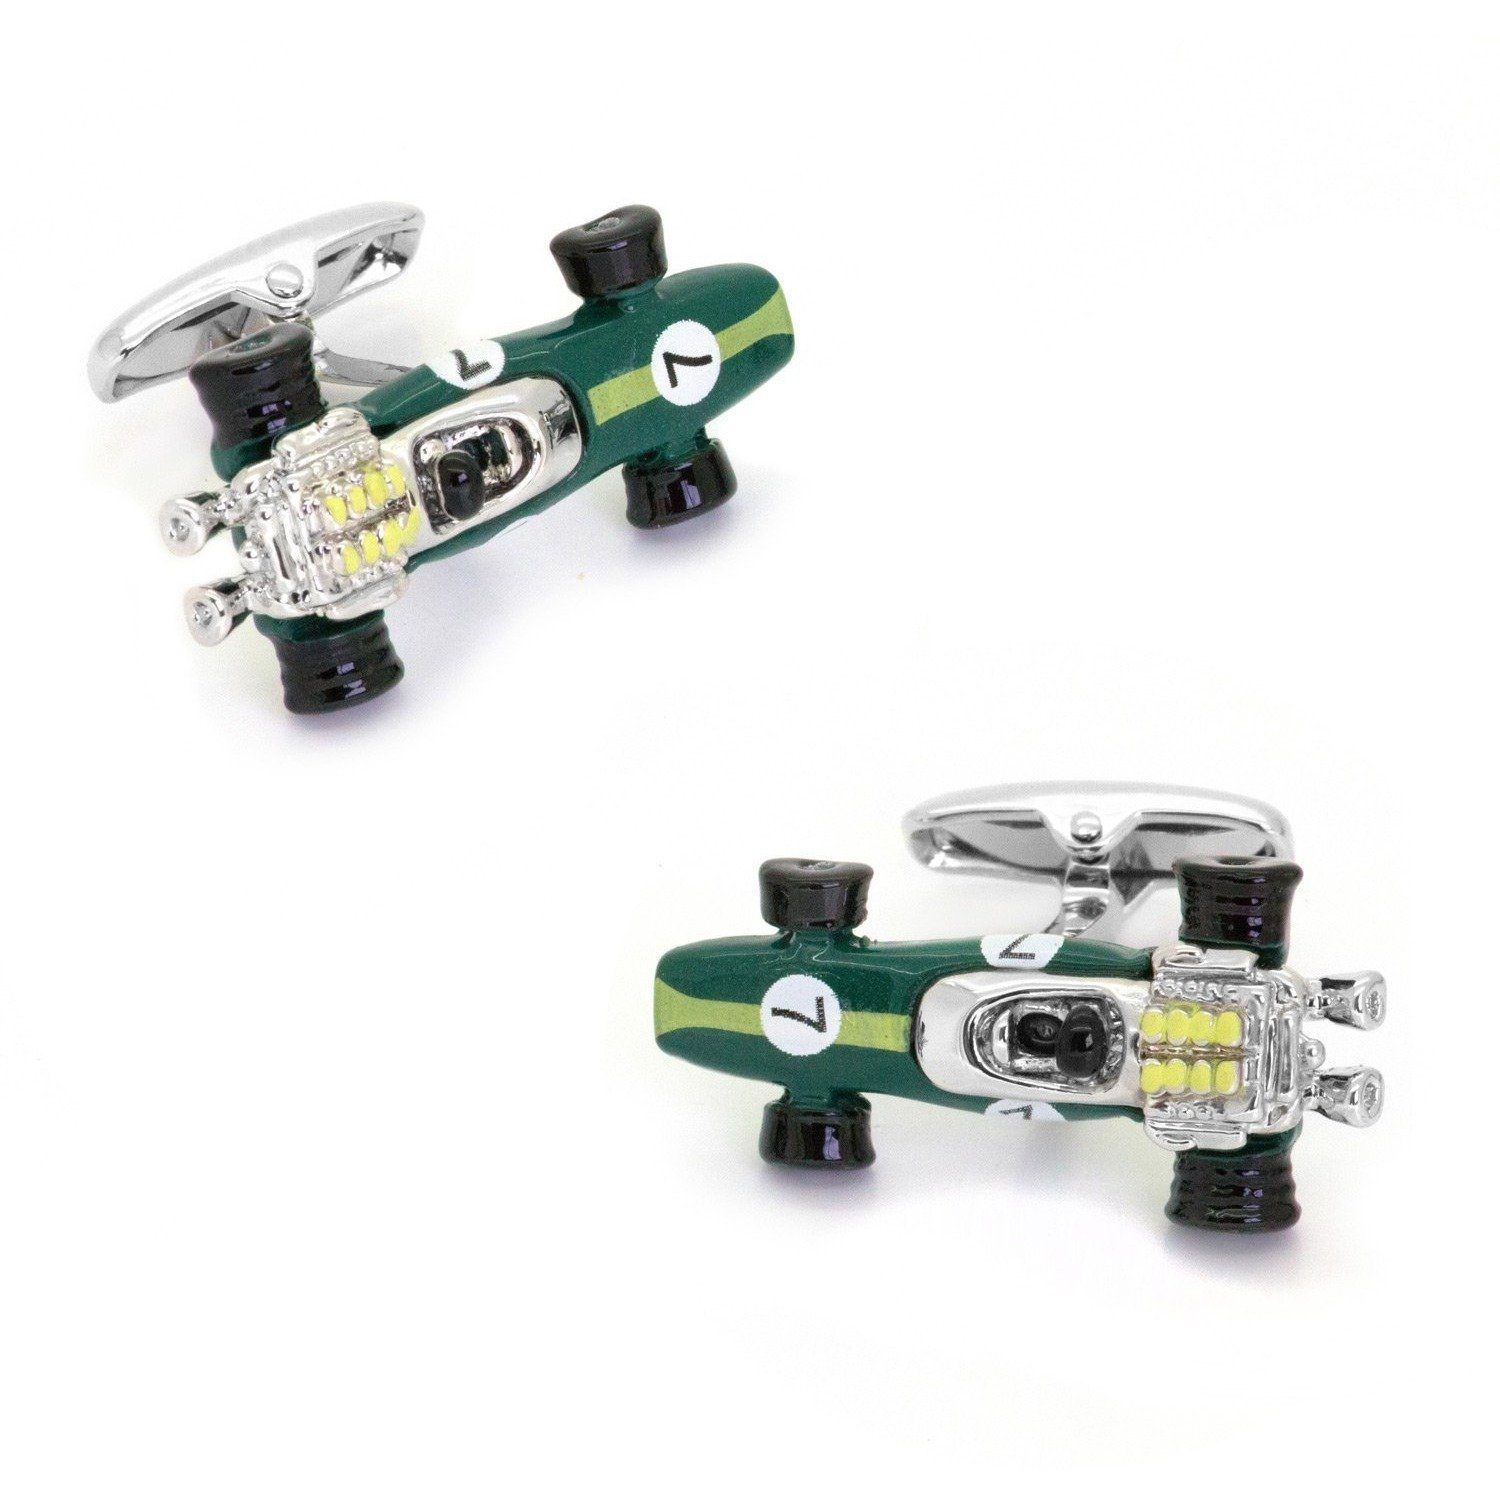 Green Lotus Racing Car Cufflinks Type 49 1967 Novelty Cufflinks Clinks Australia Green Lotus Racing Car Cufflinks Type 49 1967